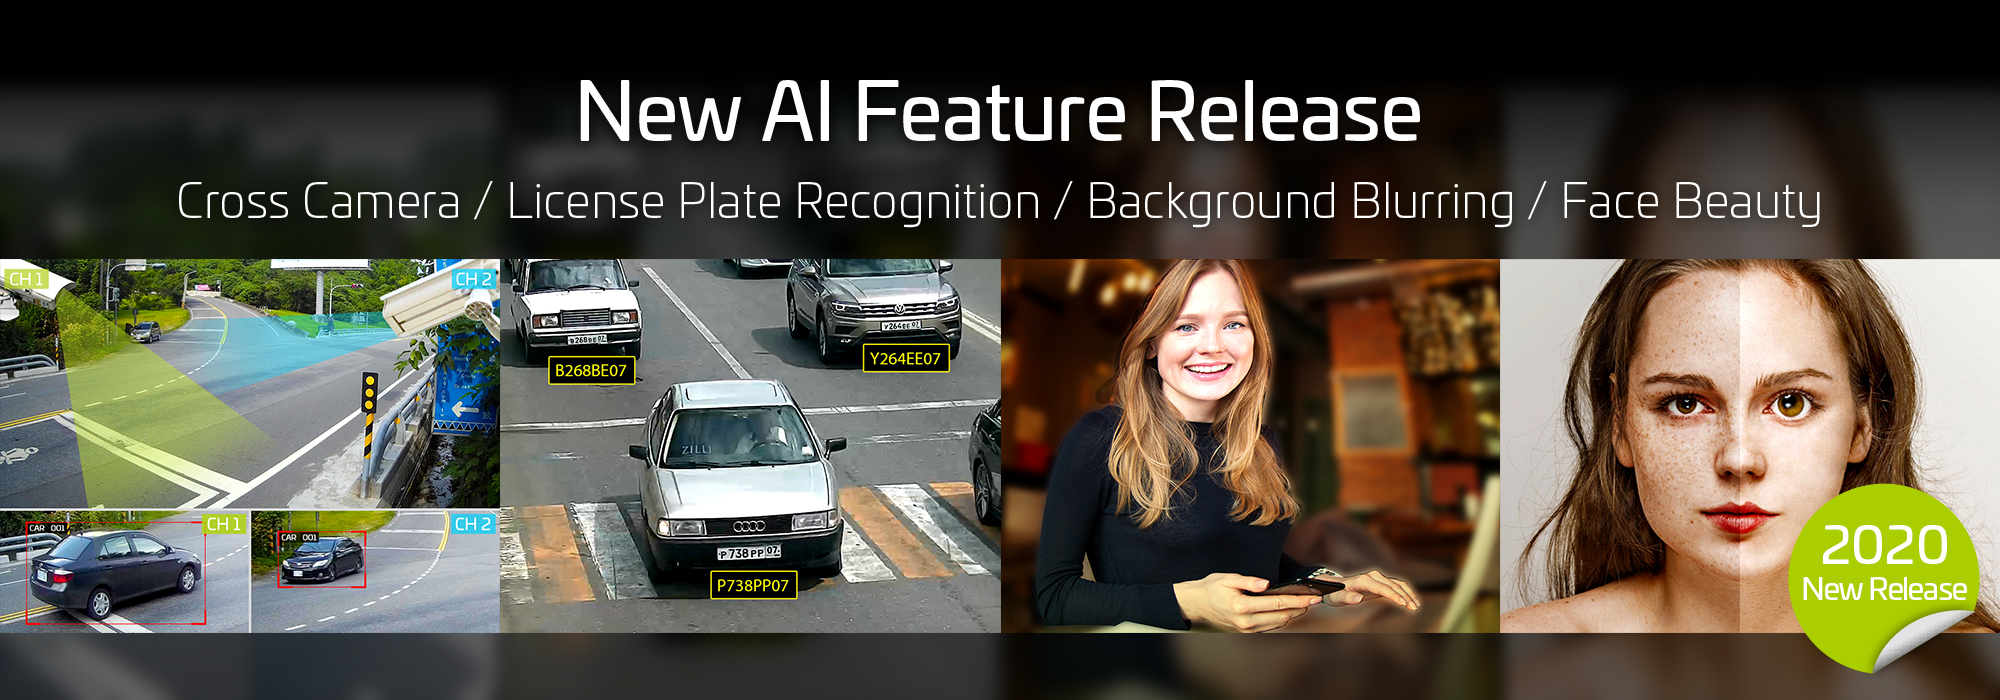 New AI Feature Release